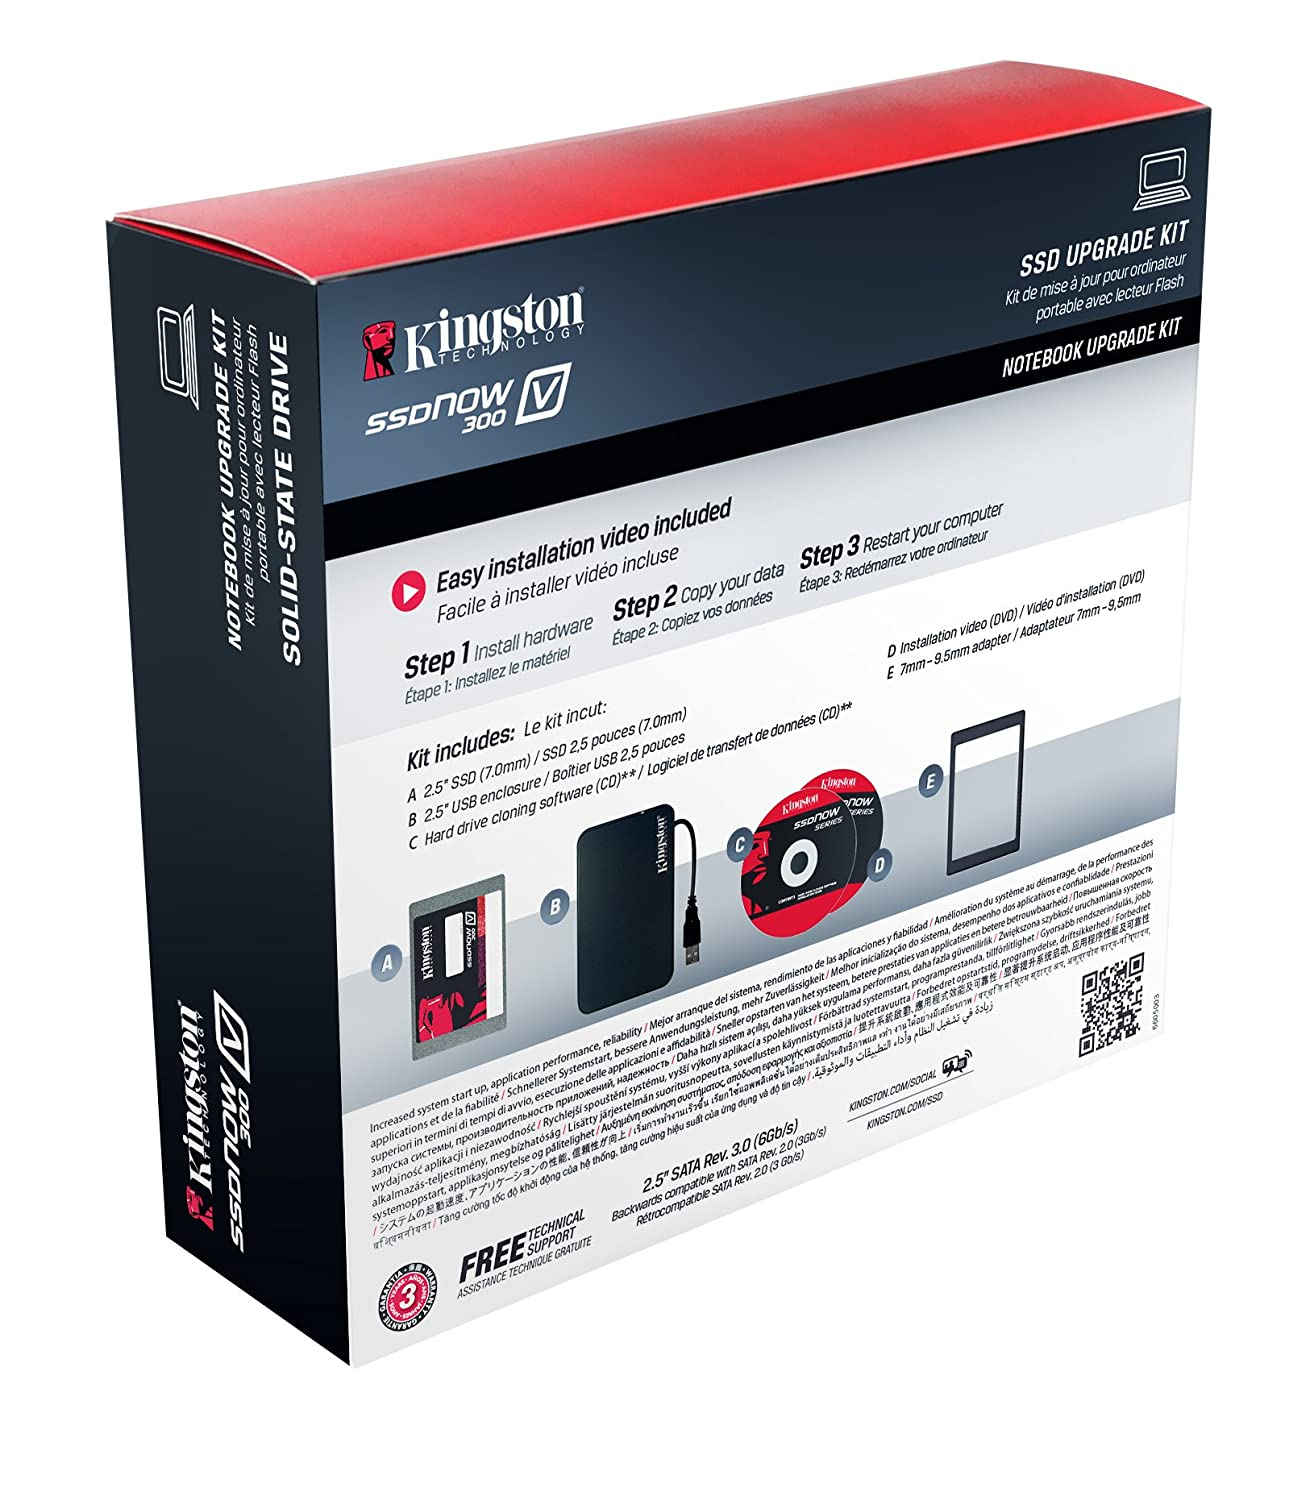 Kingston Digital SSDNow Notebook Bundle Kit with Adapter Solid State Drive - Review